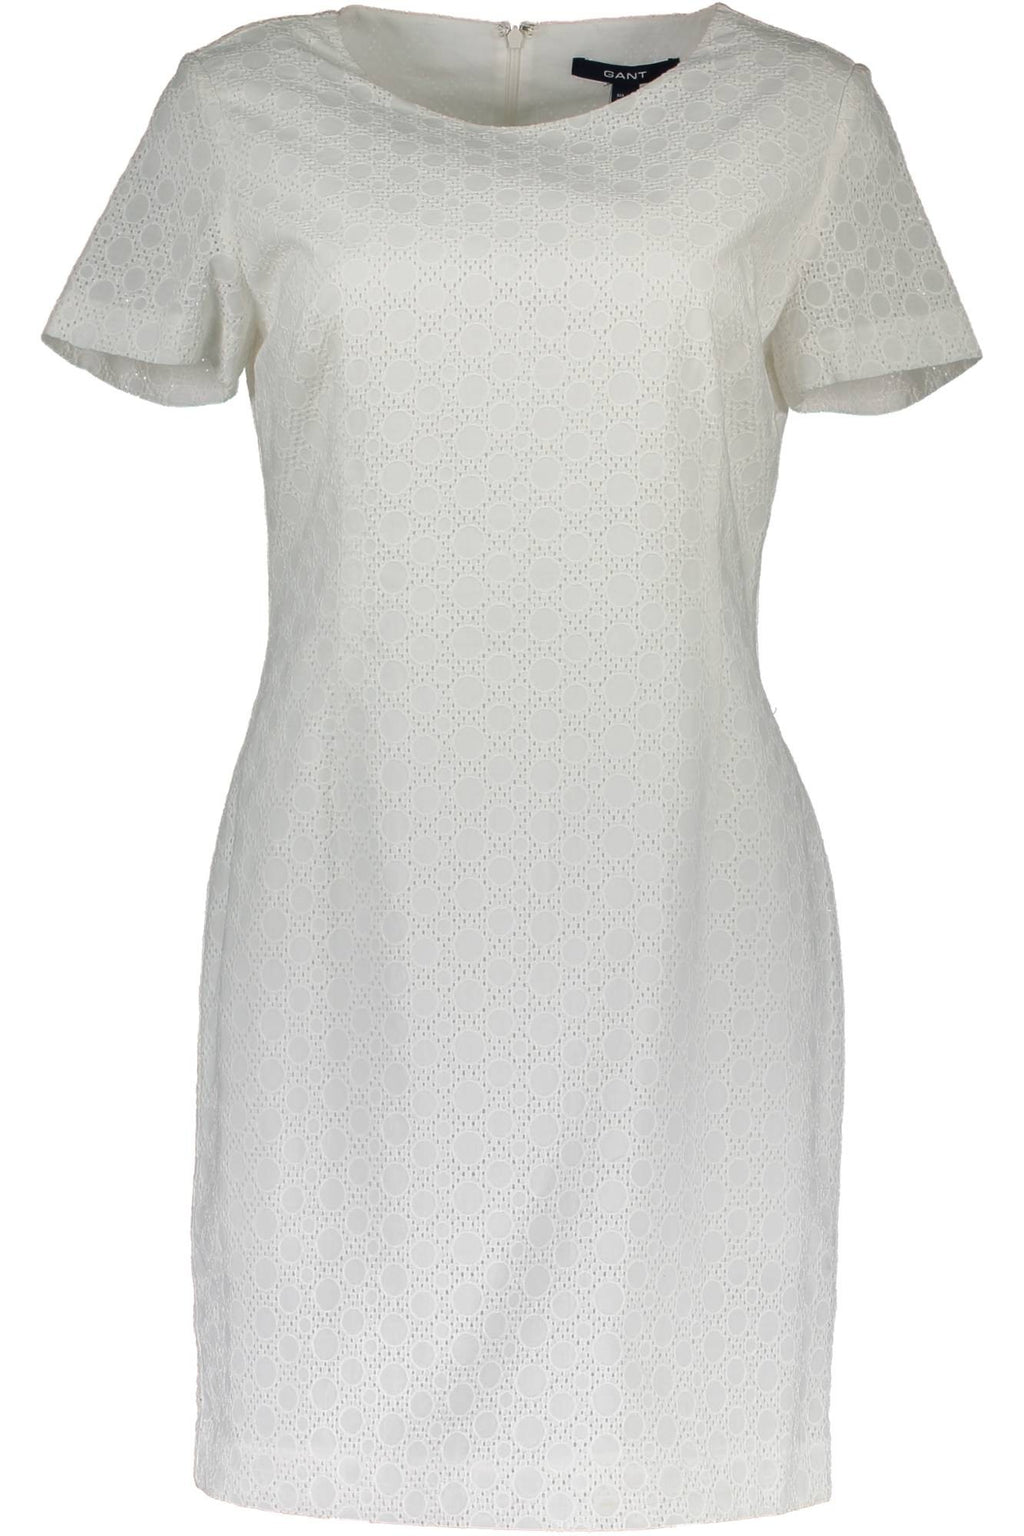 Gant Woman Dress